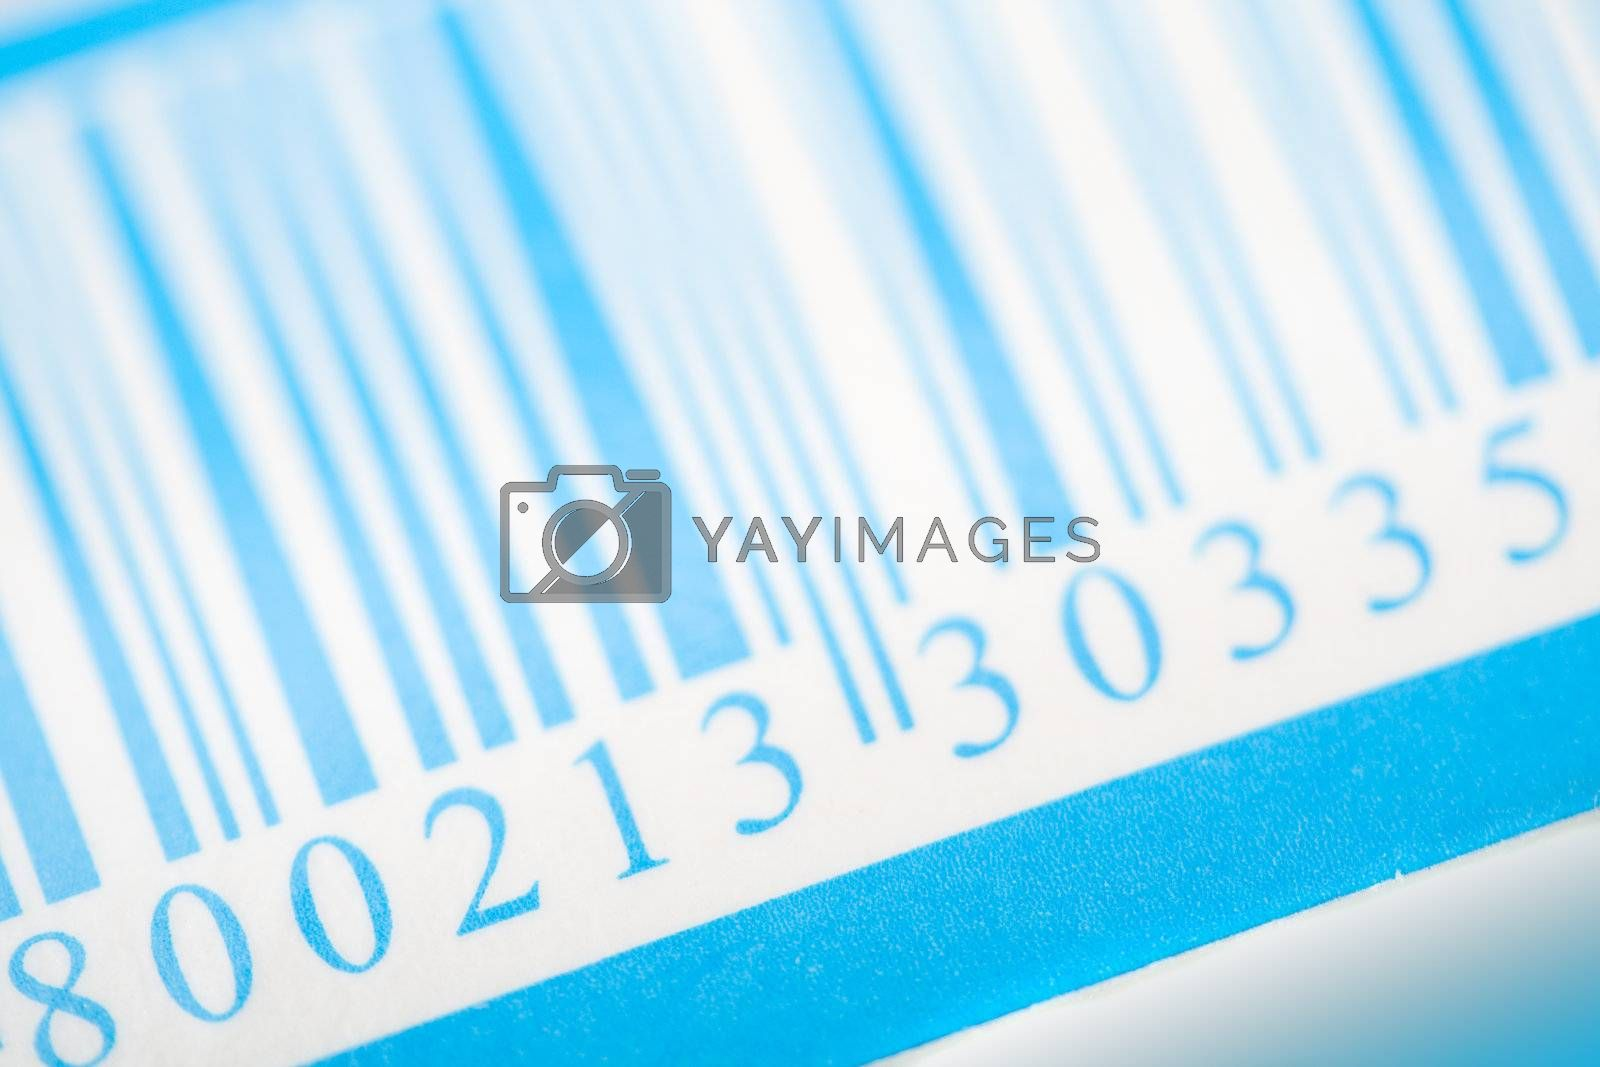 Royalty free image of blue barcode by Alekcey